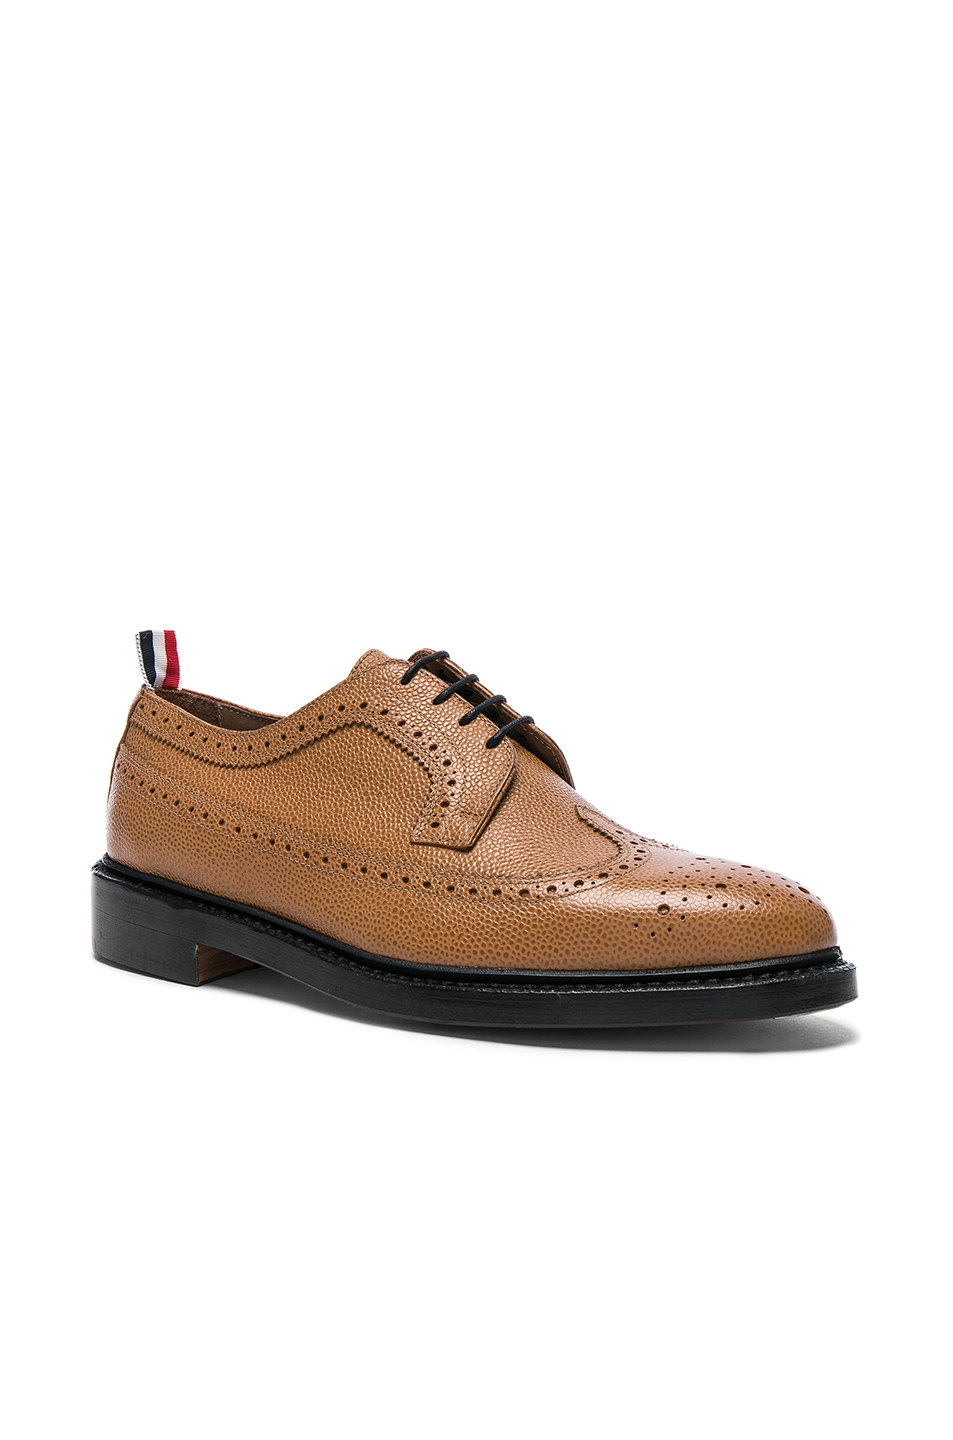 Thom Browne Classic Longwing Brogues in Brown